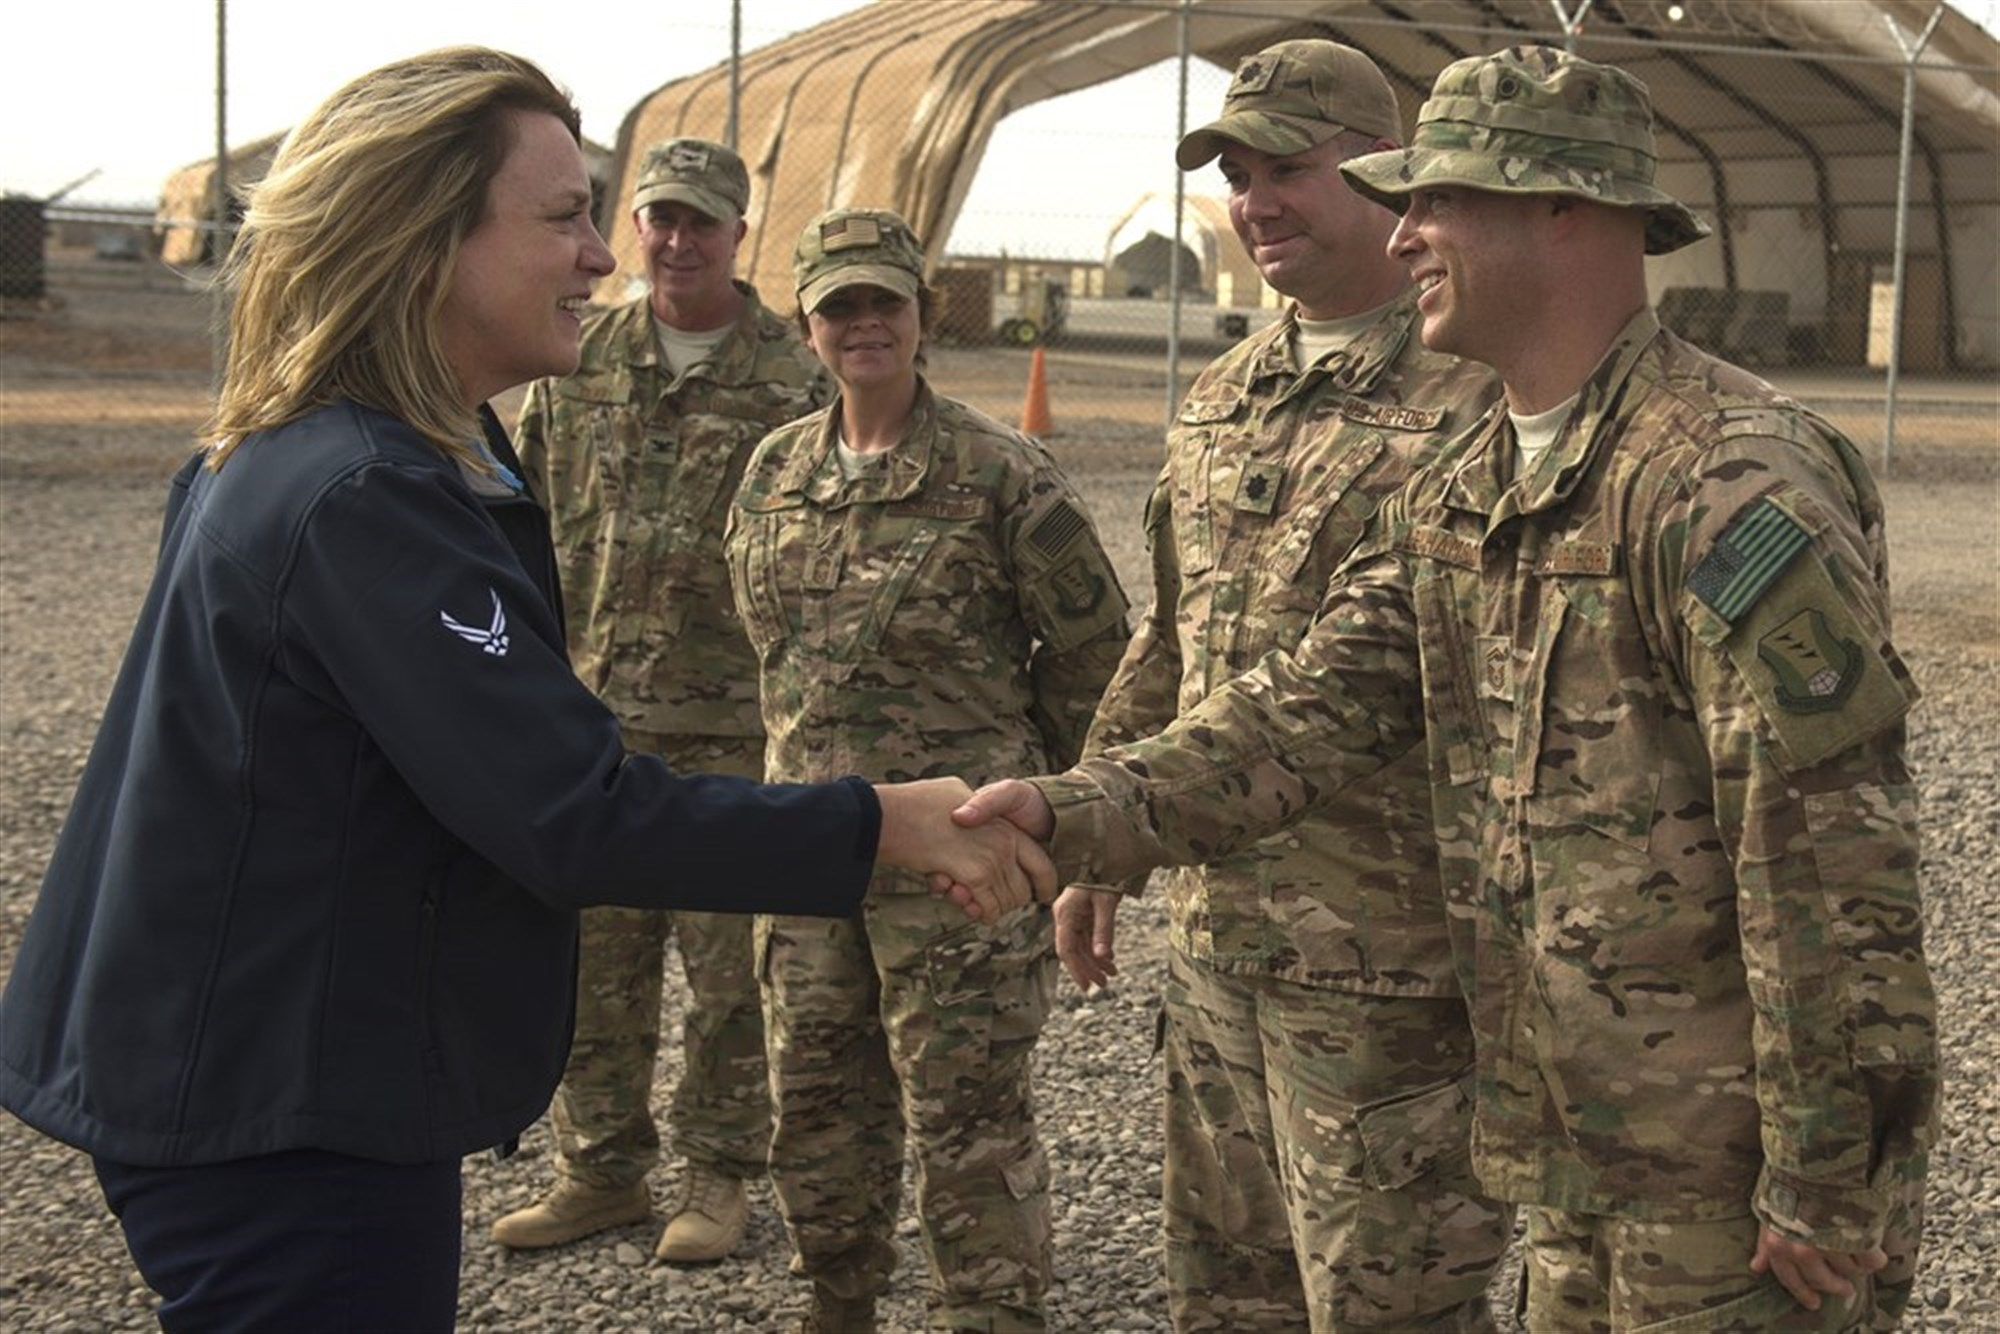 Secretary of the Air Force Deborah Lee James greets Chebelley Airfield leadership, Nov. 12, 2015. During her visit to Chebelley and Camp Lemonnier, James interacted with Airmen across a wide spectrum of career fields as she learned about the critical operations in each location.